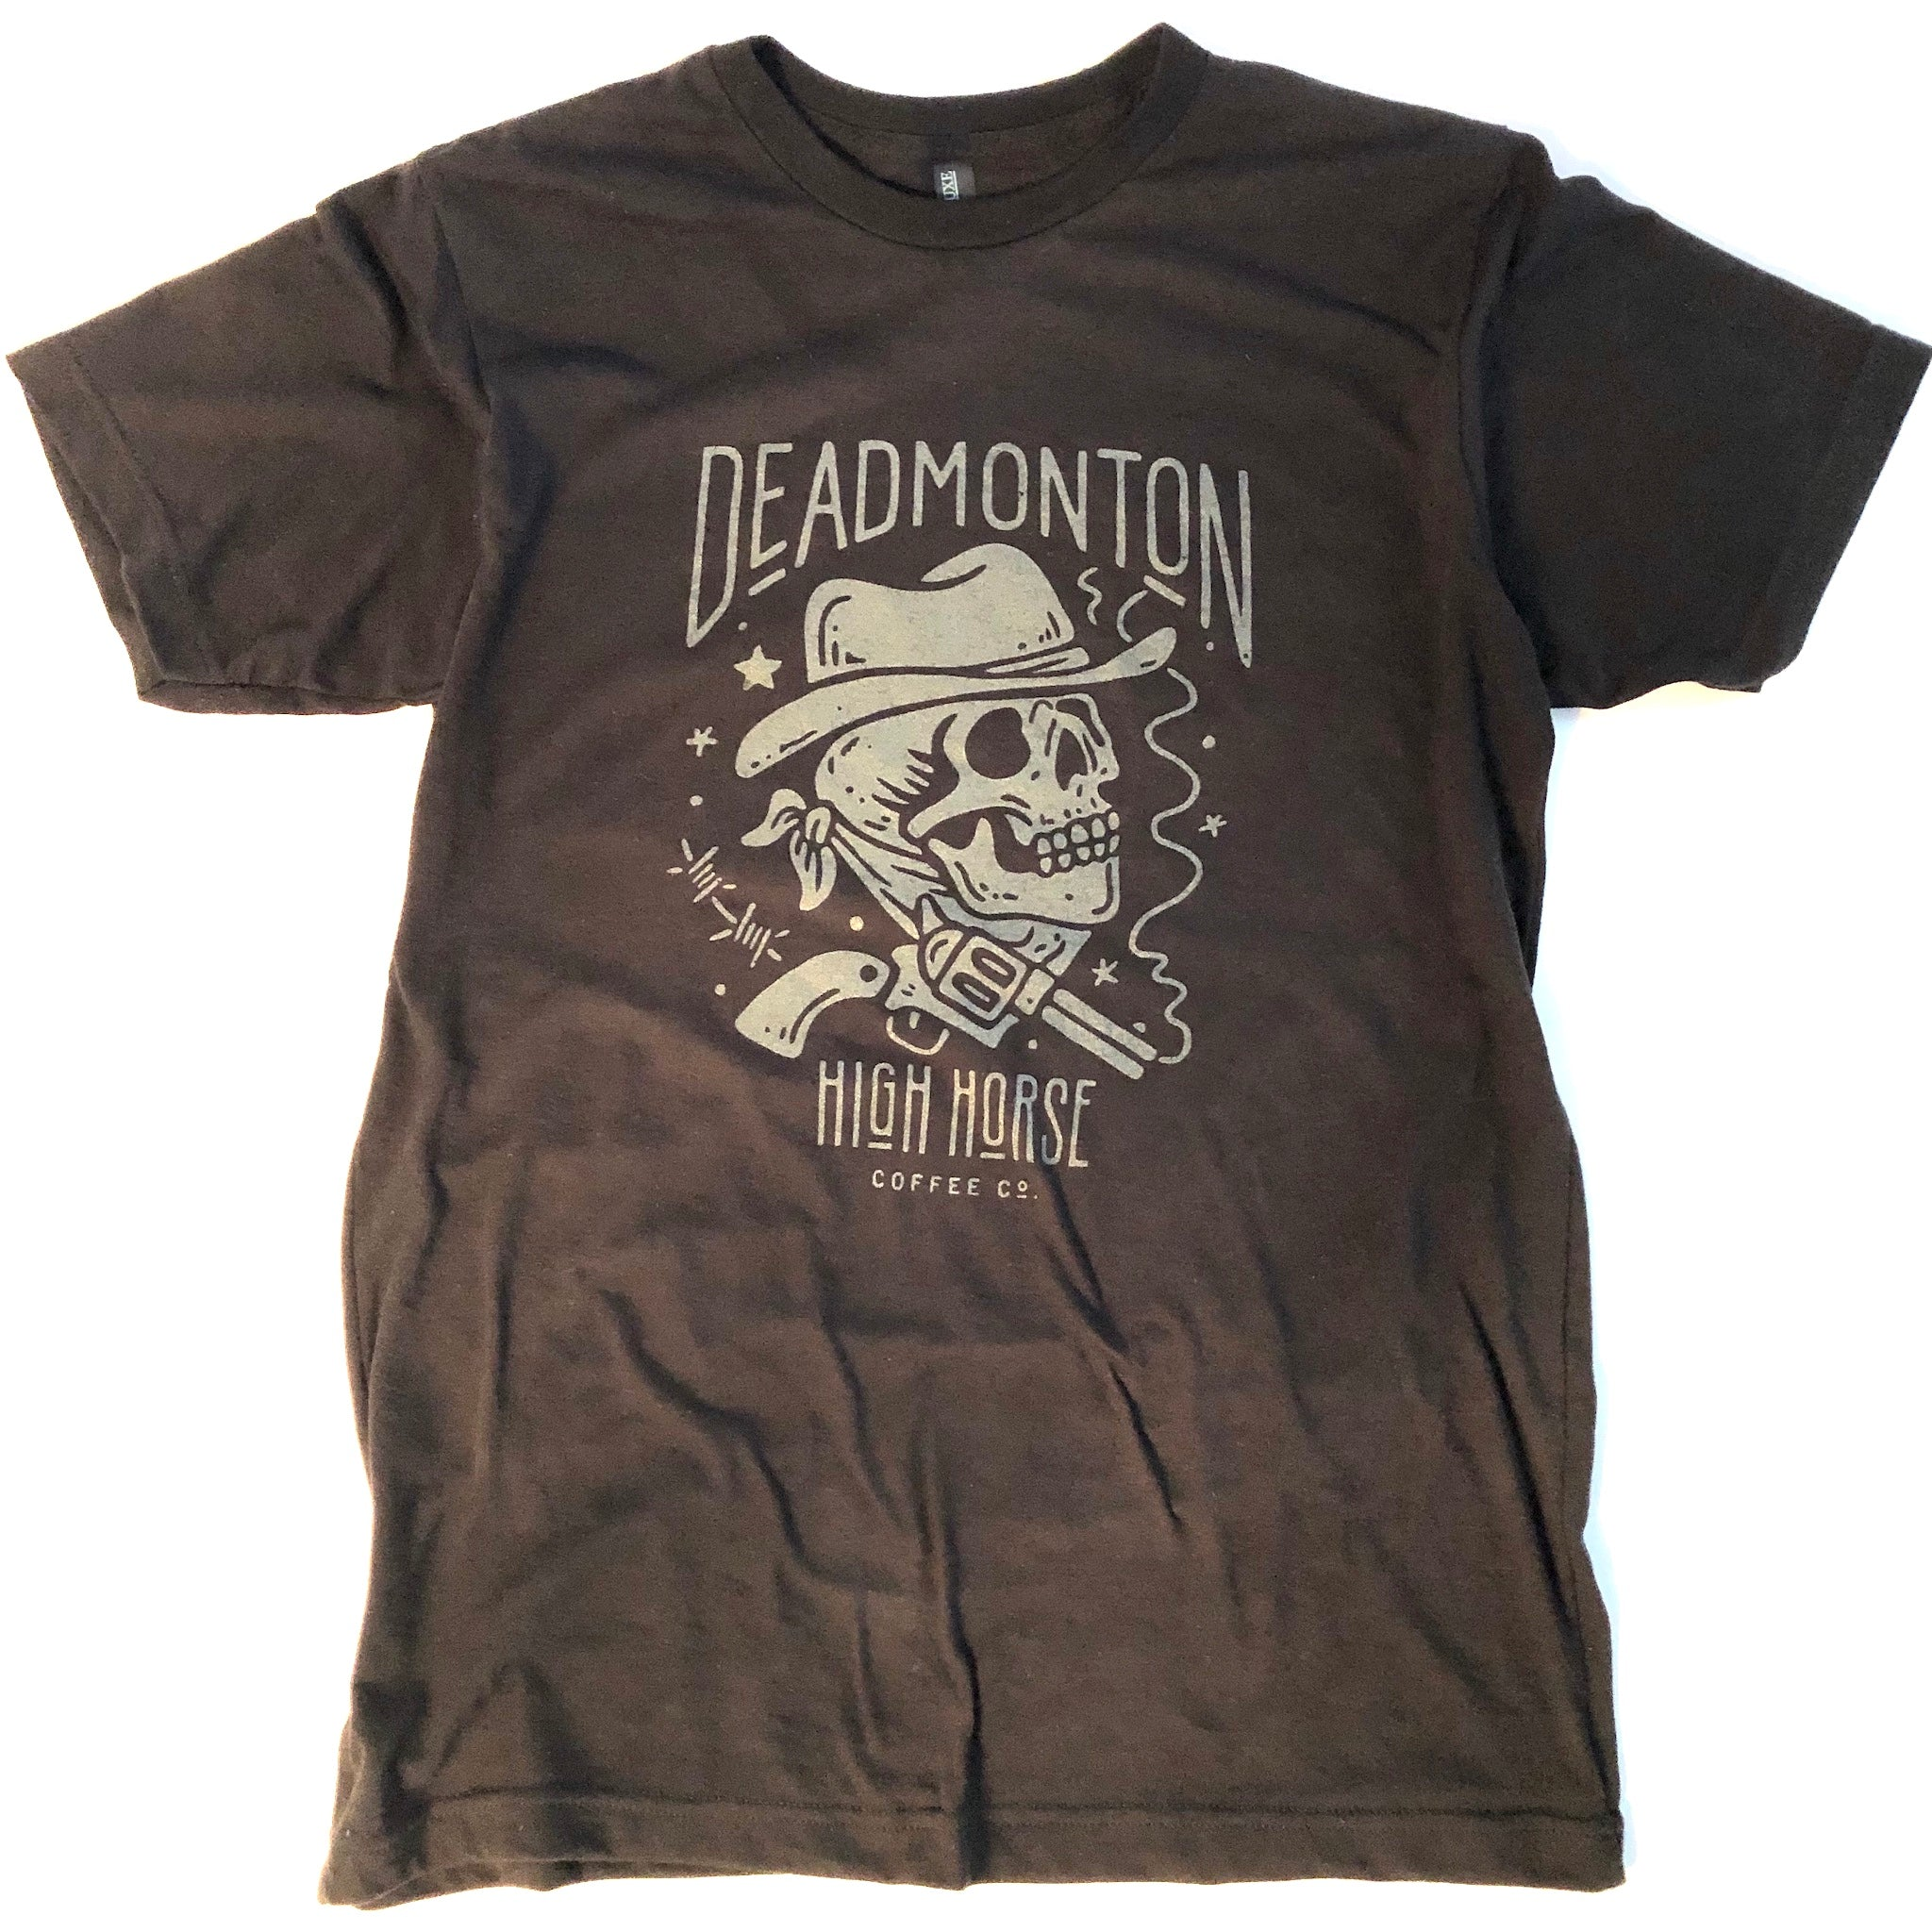 Deadmonton Tee - Black - Men's - High Horse Coffee Company